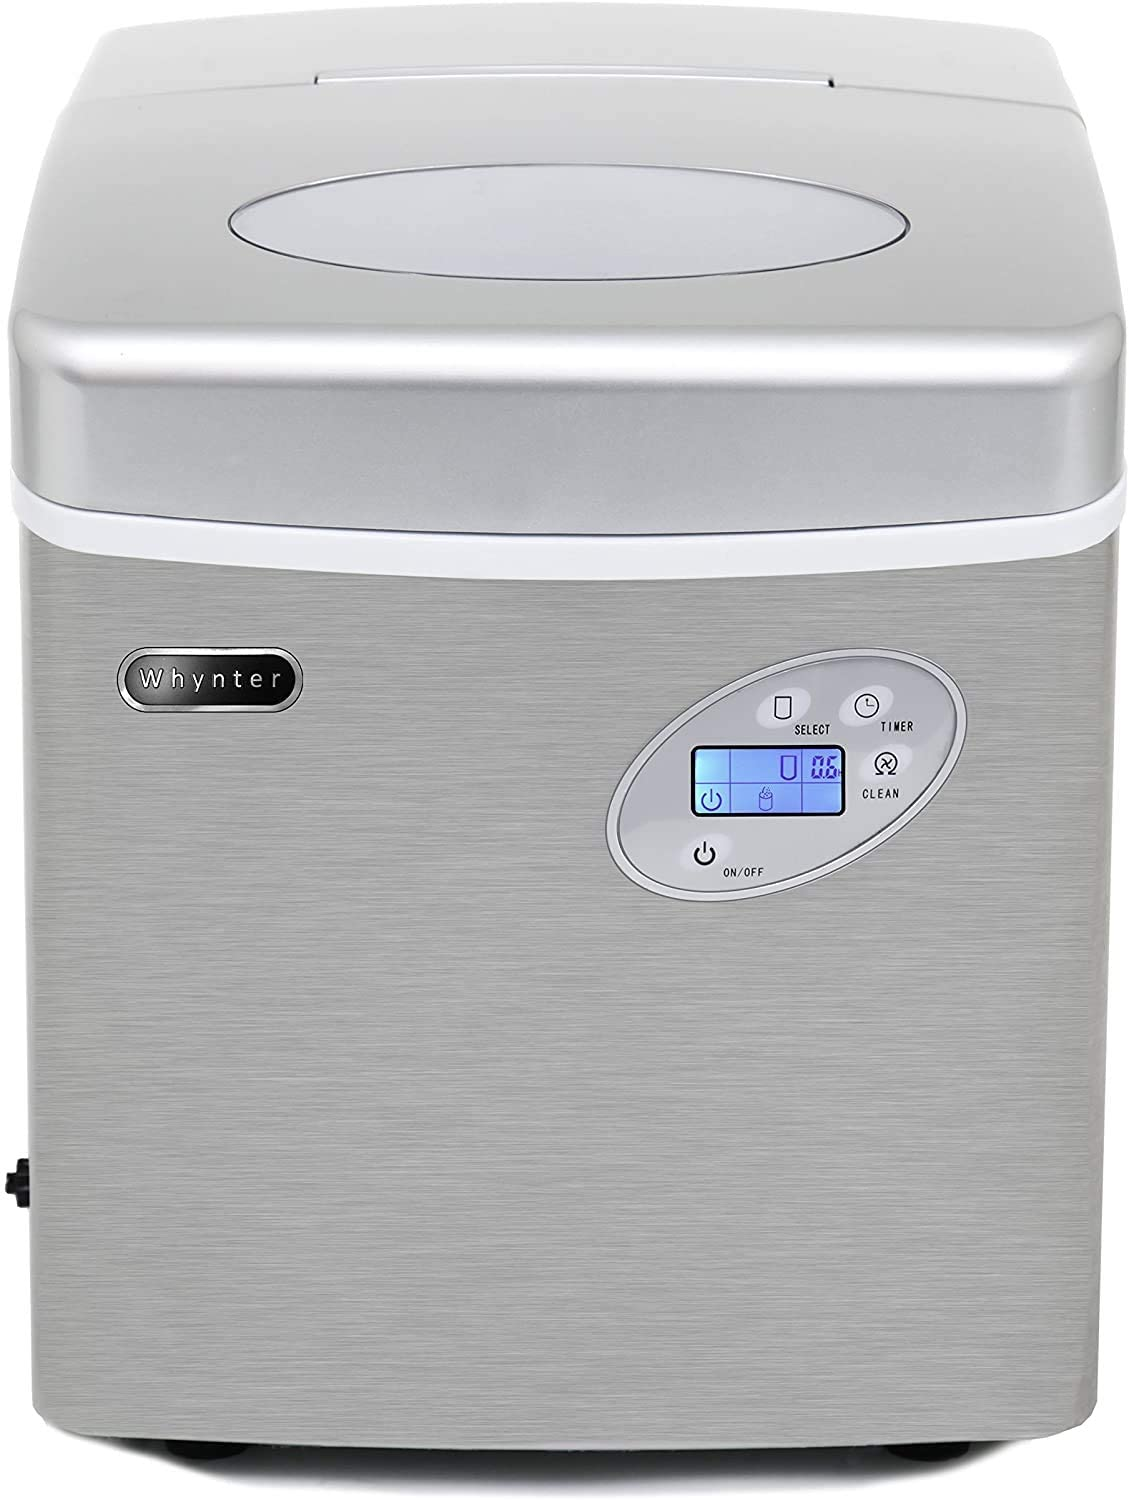 Whynter 49Lb Portable ICE Maker IMC-491DC Review 2021